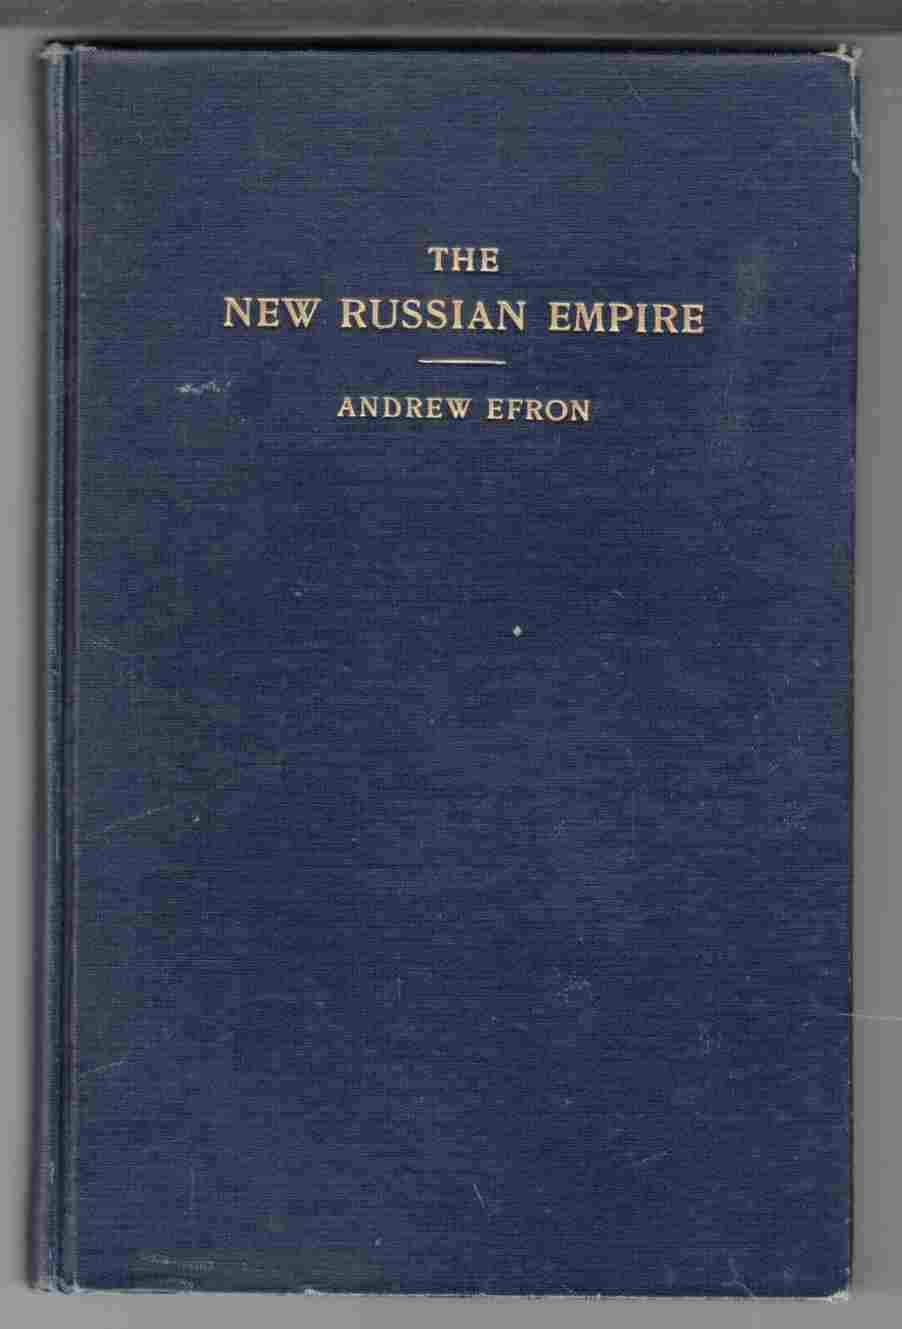 Image for The New Russian Empire A Theory of the Soviet State Conceived in Terms of a Dynamic Interpretation of Law